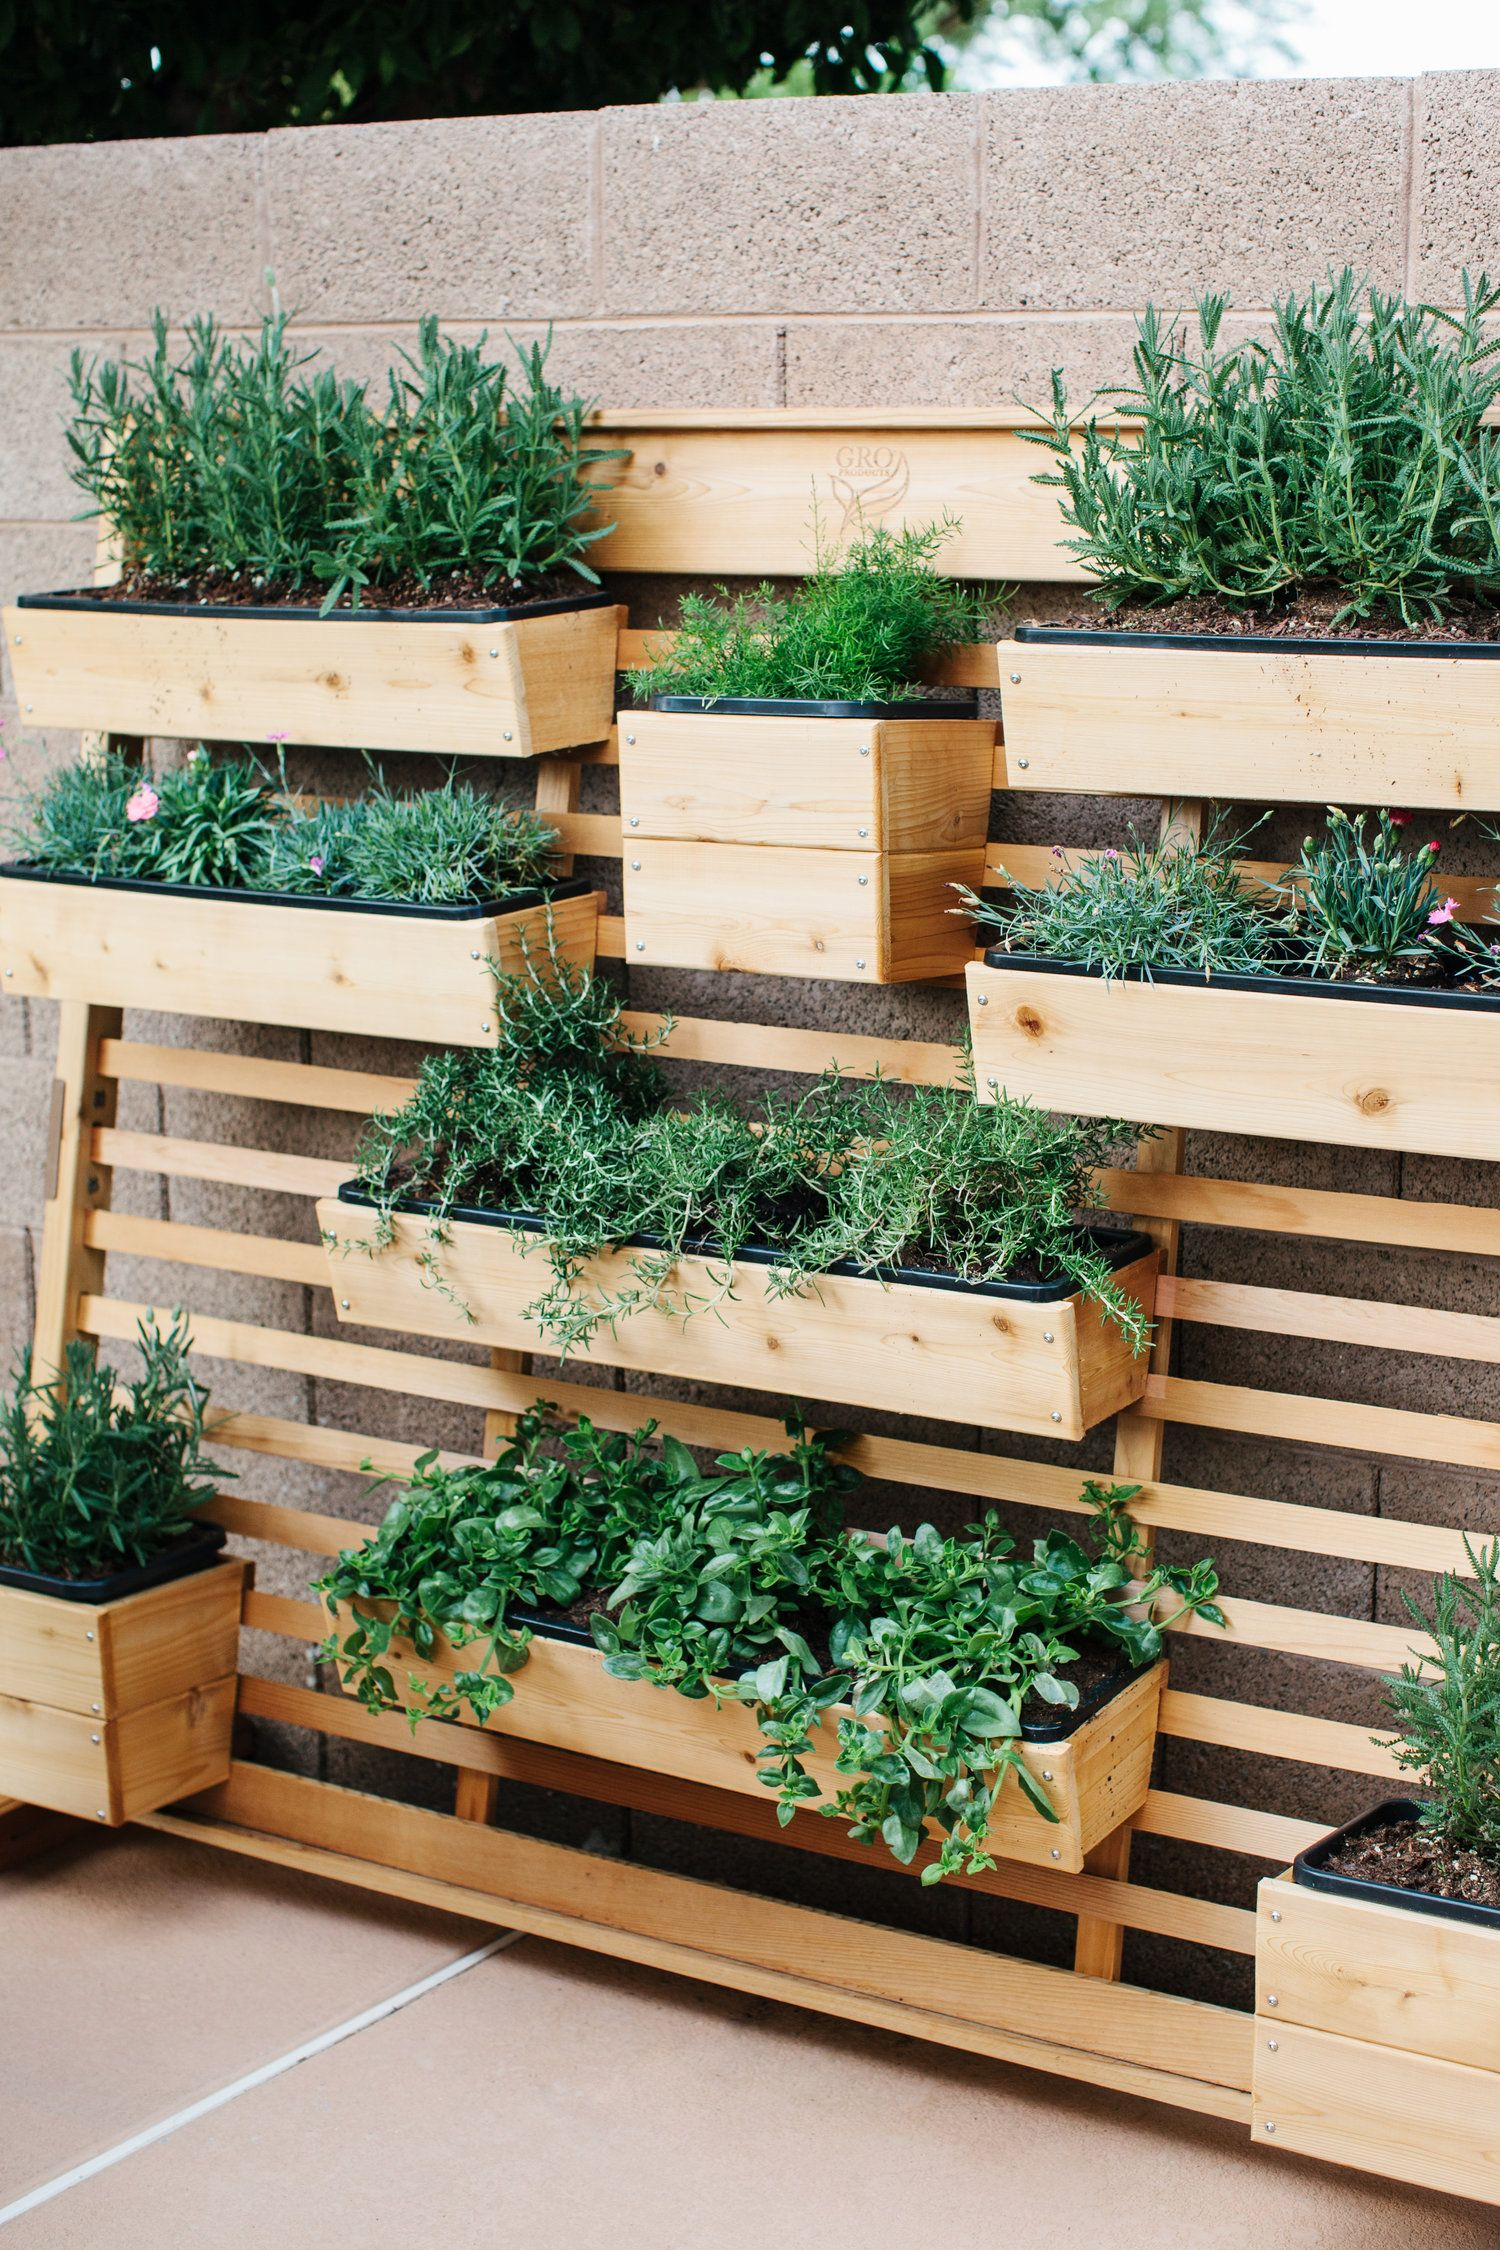 simple wood living wall for your yard that is portable and durable - Wall Garden